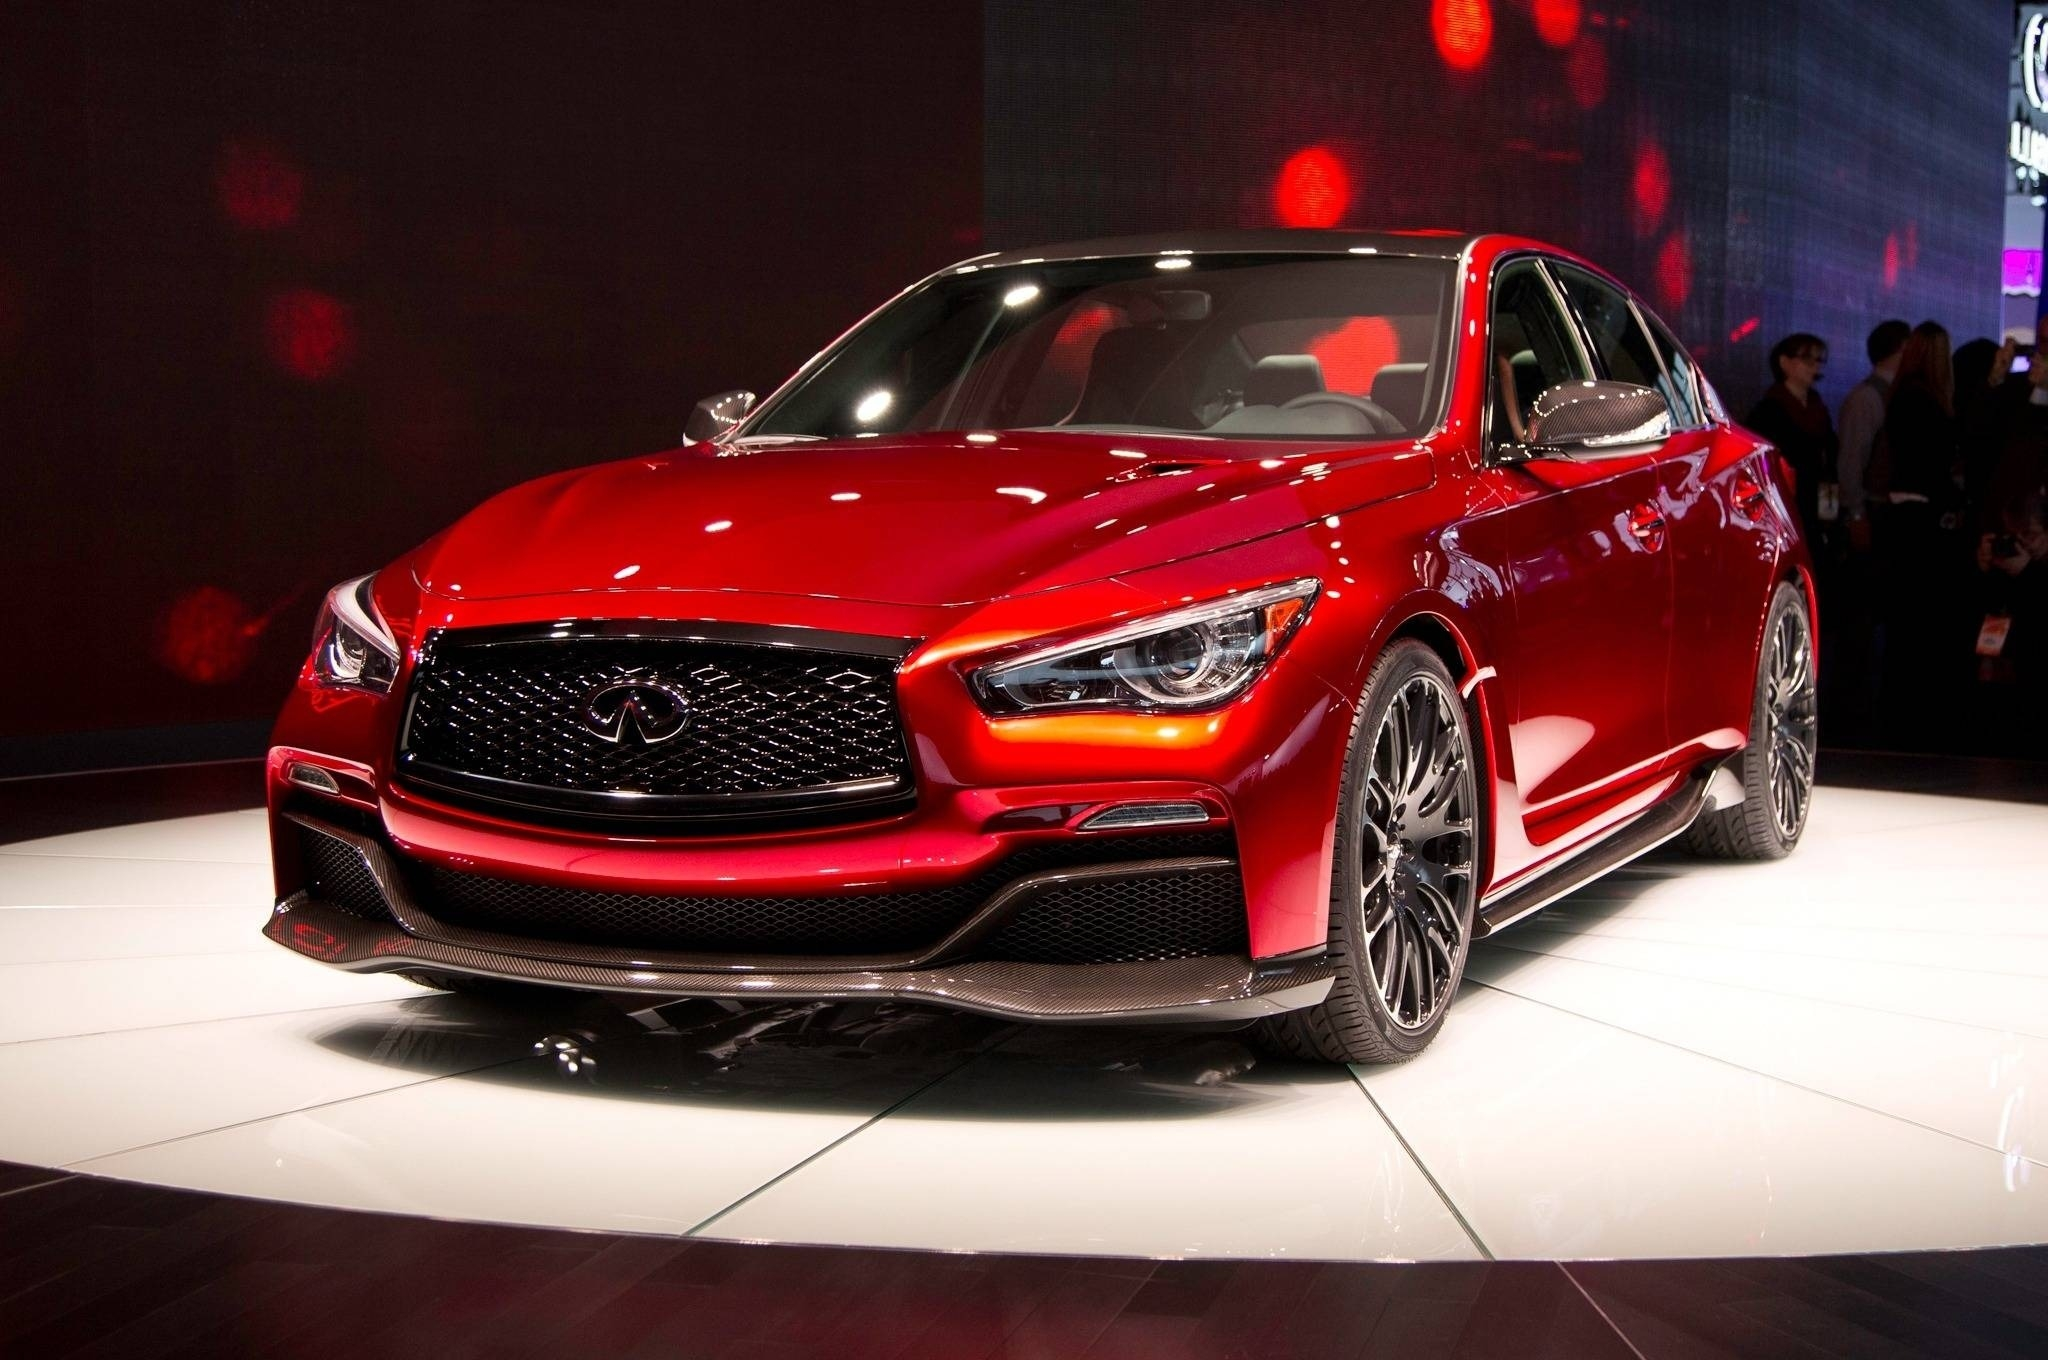 77 All New 2019 Infiniti Q50 Coupe Eau Rouge Redesign and Concept